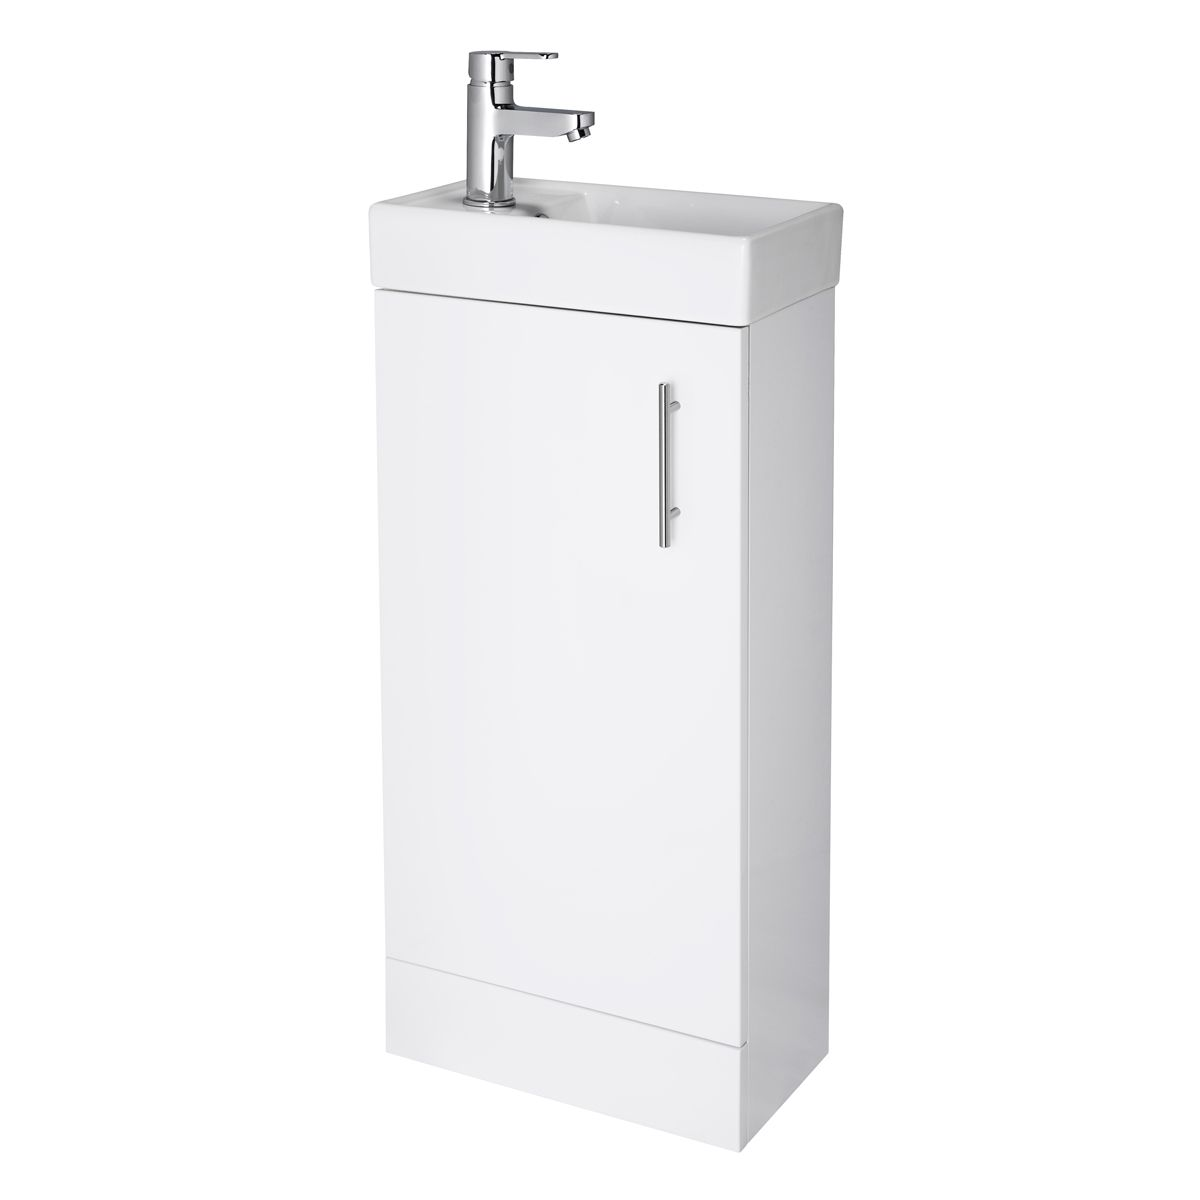 Nuie Vault Gloss White Compact Vanity Unit 400mm